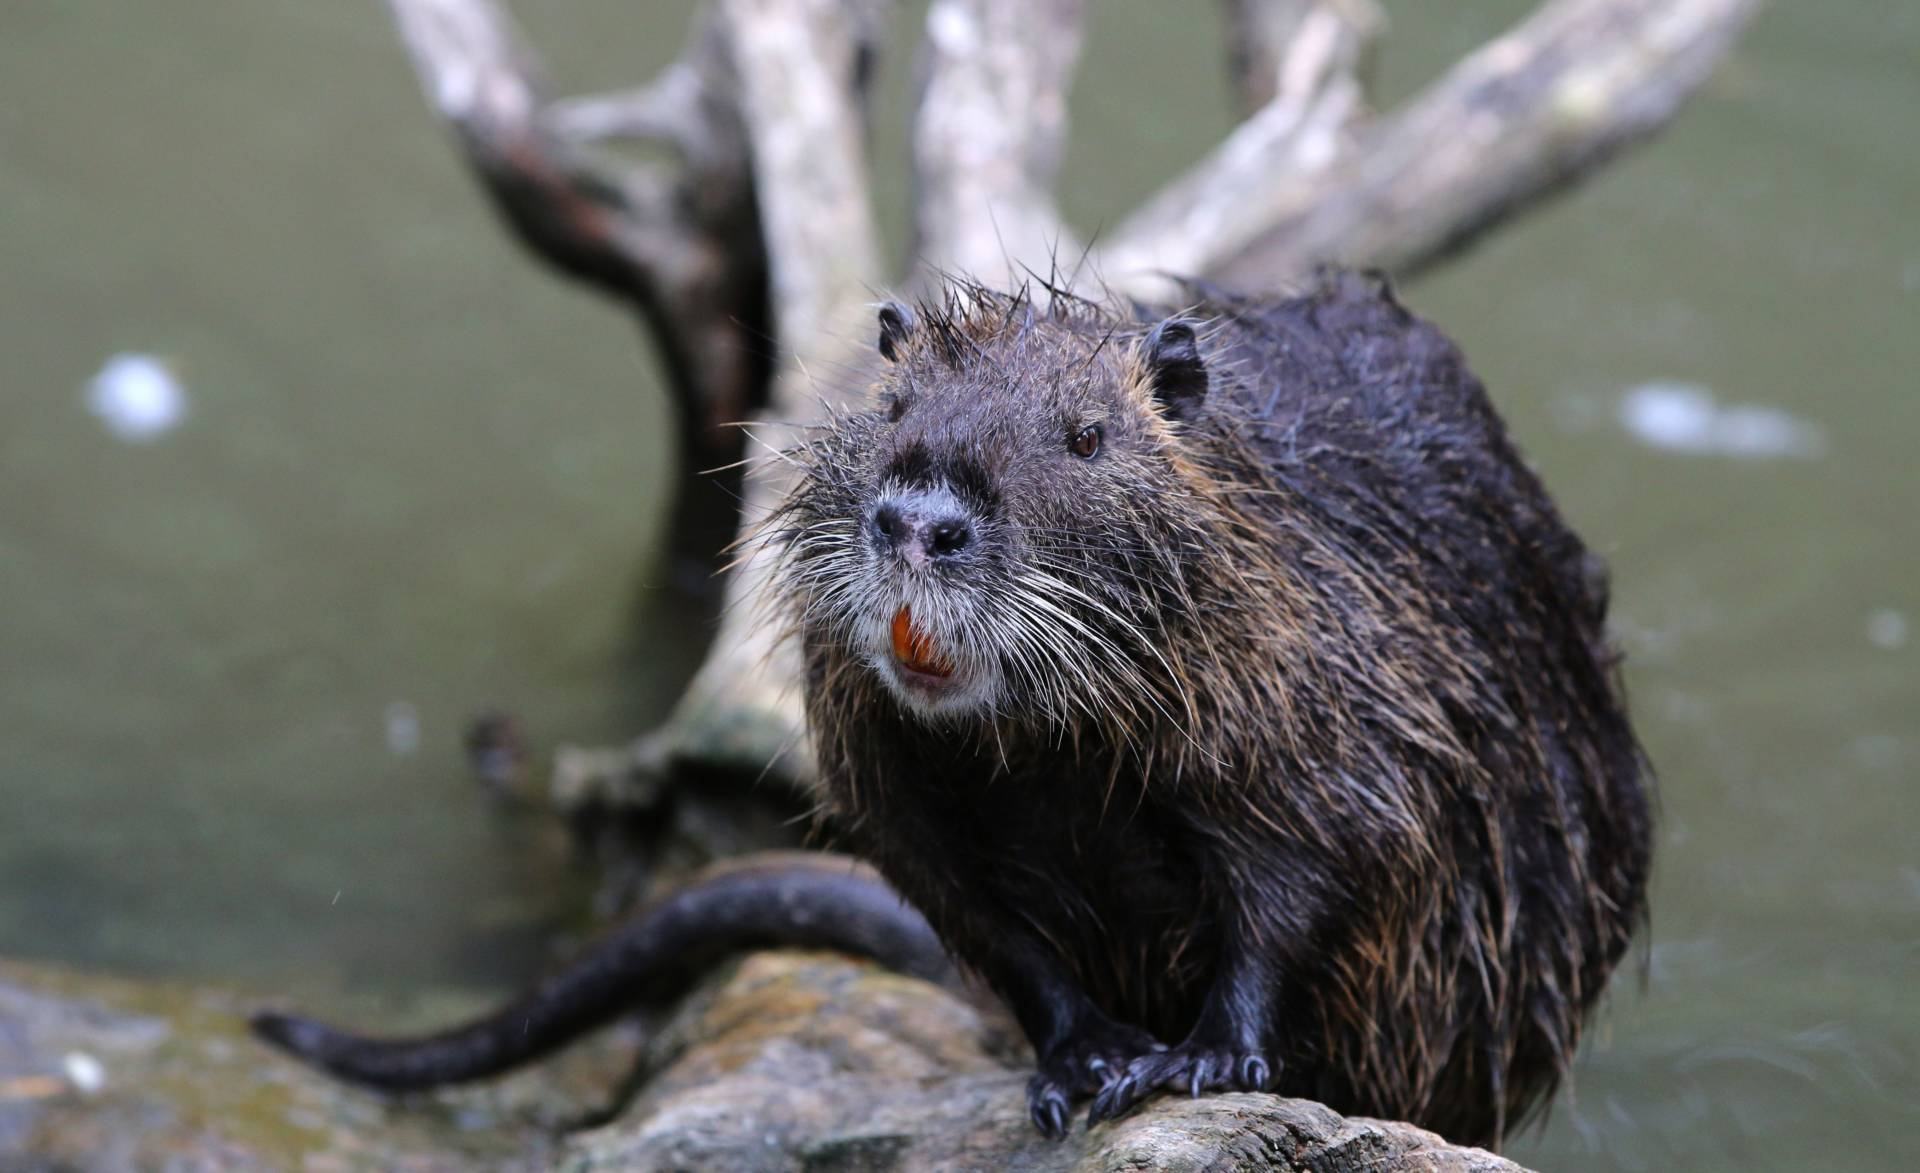 A nutria sits on a log on June 9, 2018. Although California's Department of Food and Agriculture eradicated them in the 1970s, a few nutria were spotted in Merced County last year. Yann Schreiber/AFP/Getty Image